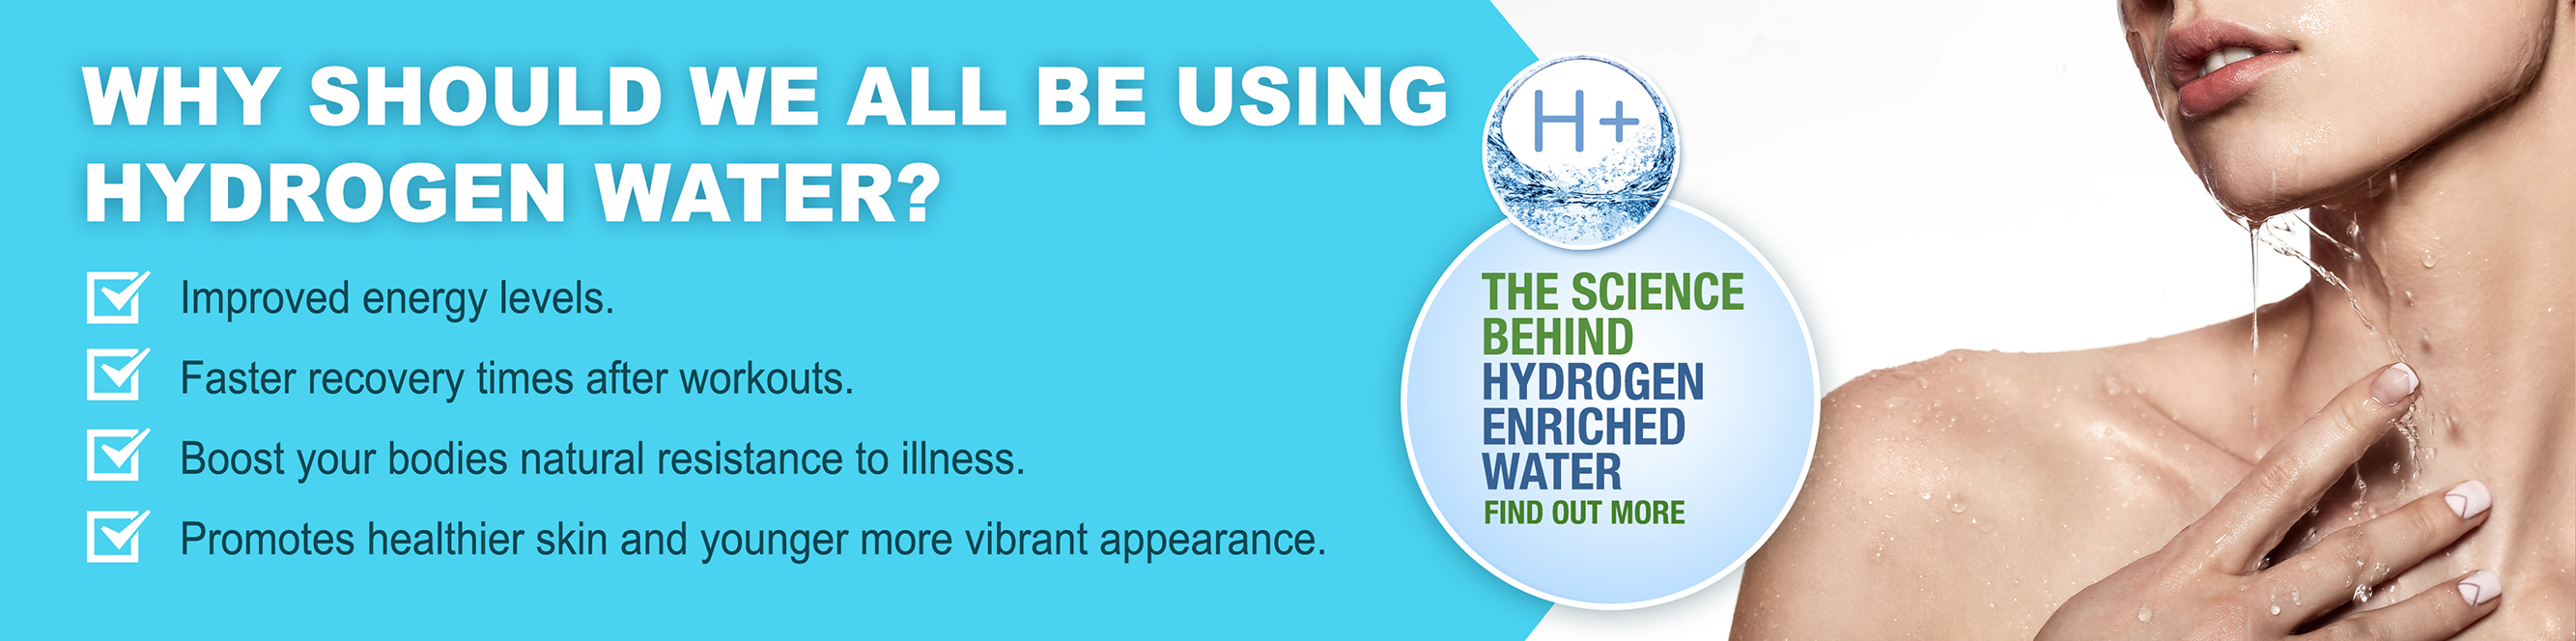 Hydrogenated-Shower-Banner